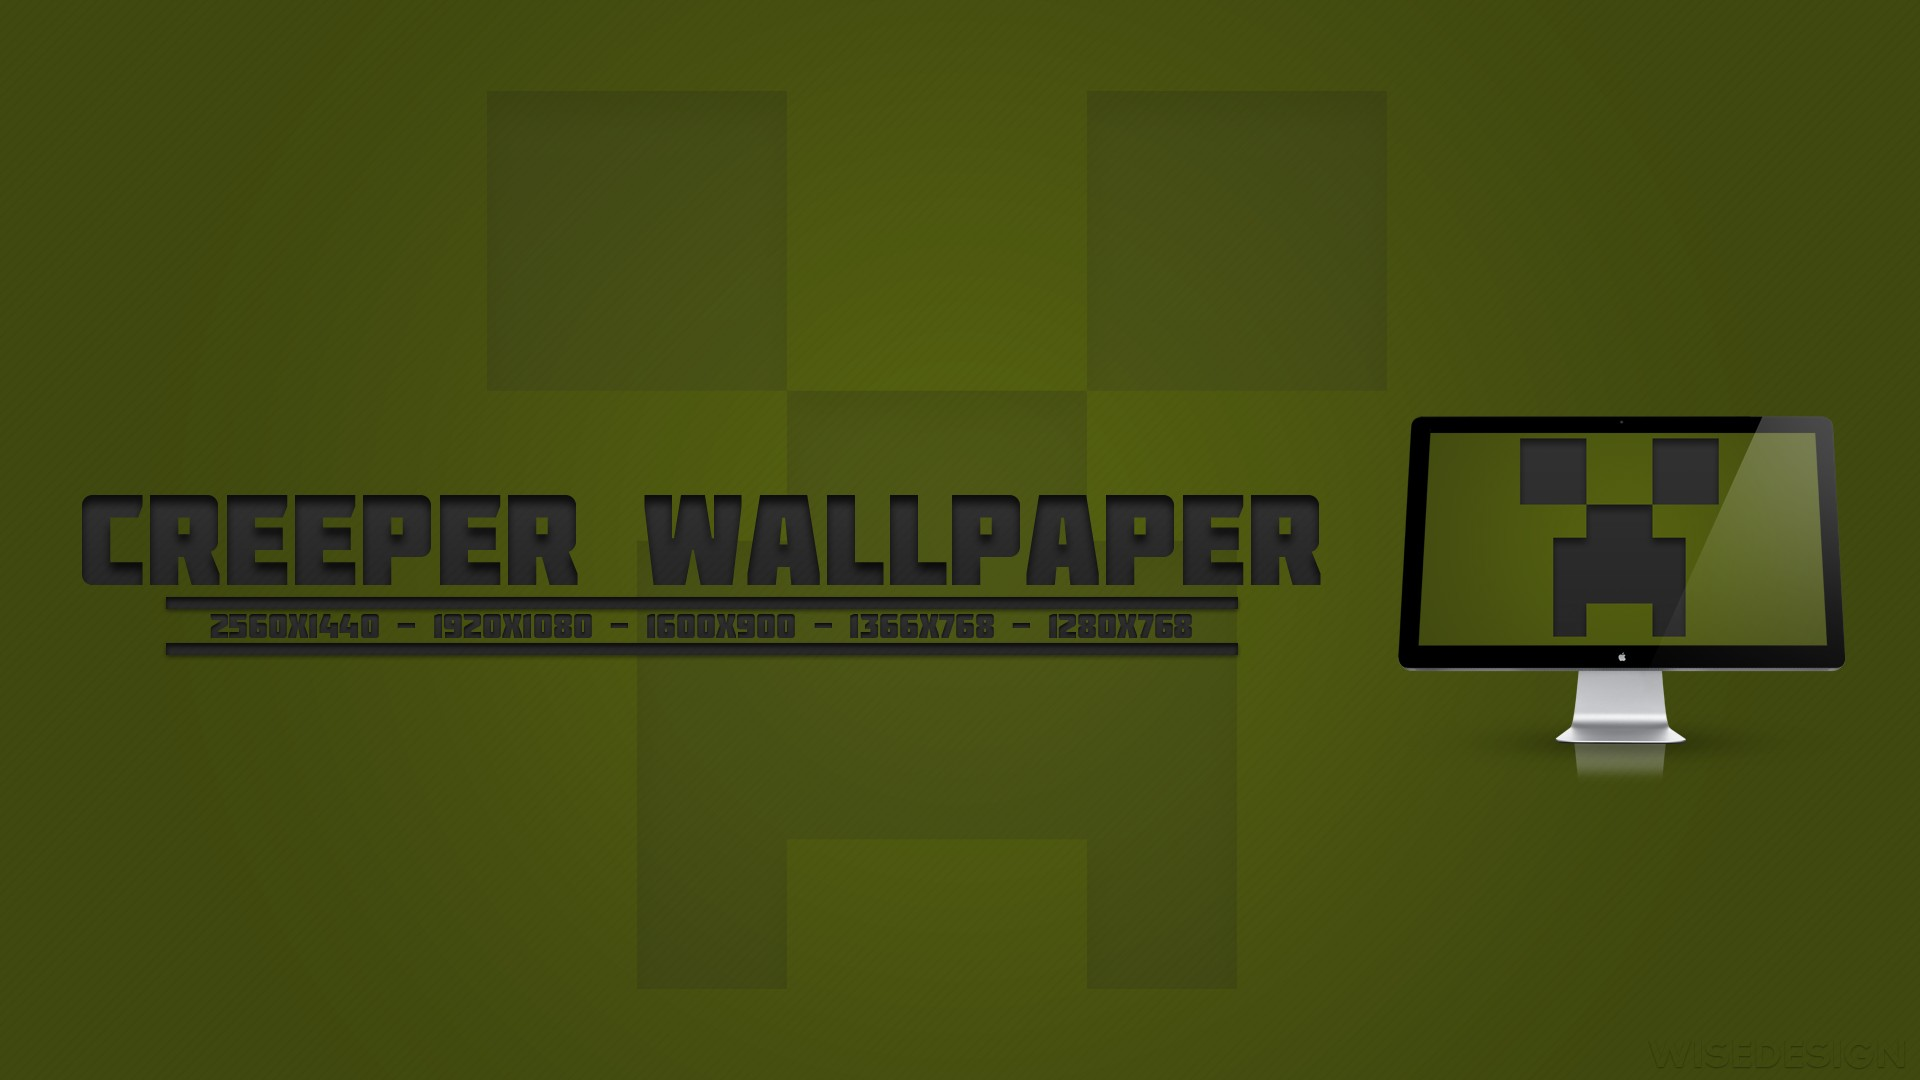 Minecraft Creeper Wallpapers for Computer HD Wallpaper of Minecraft 1920x1080